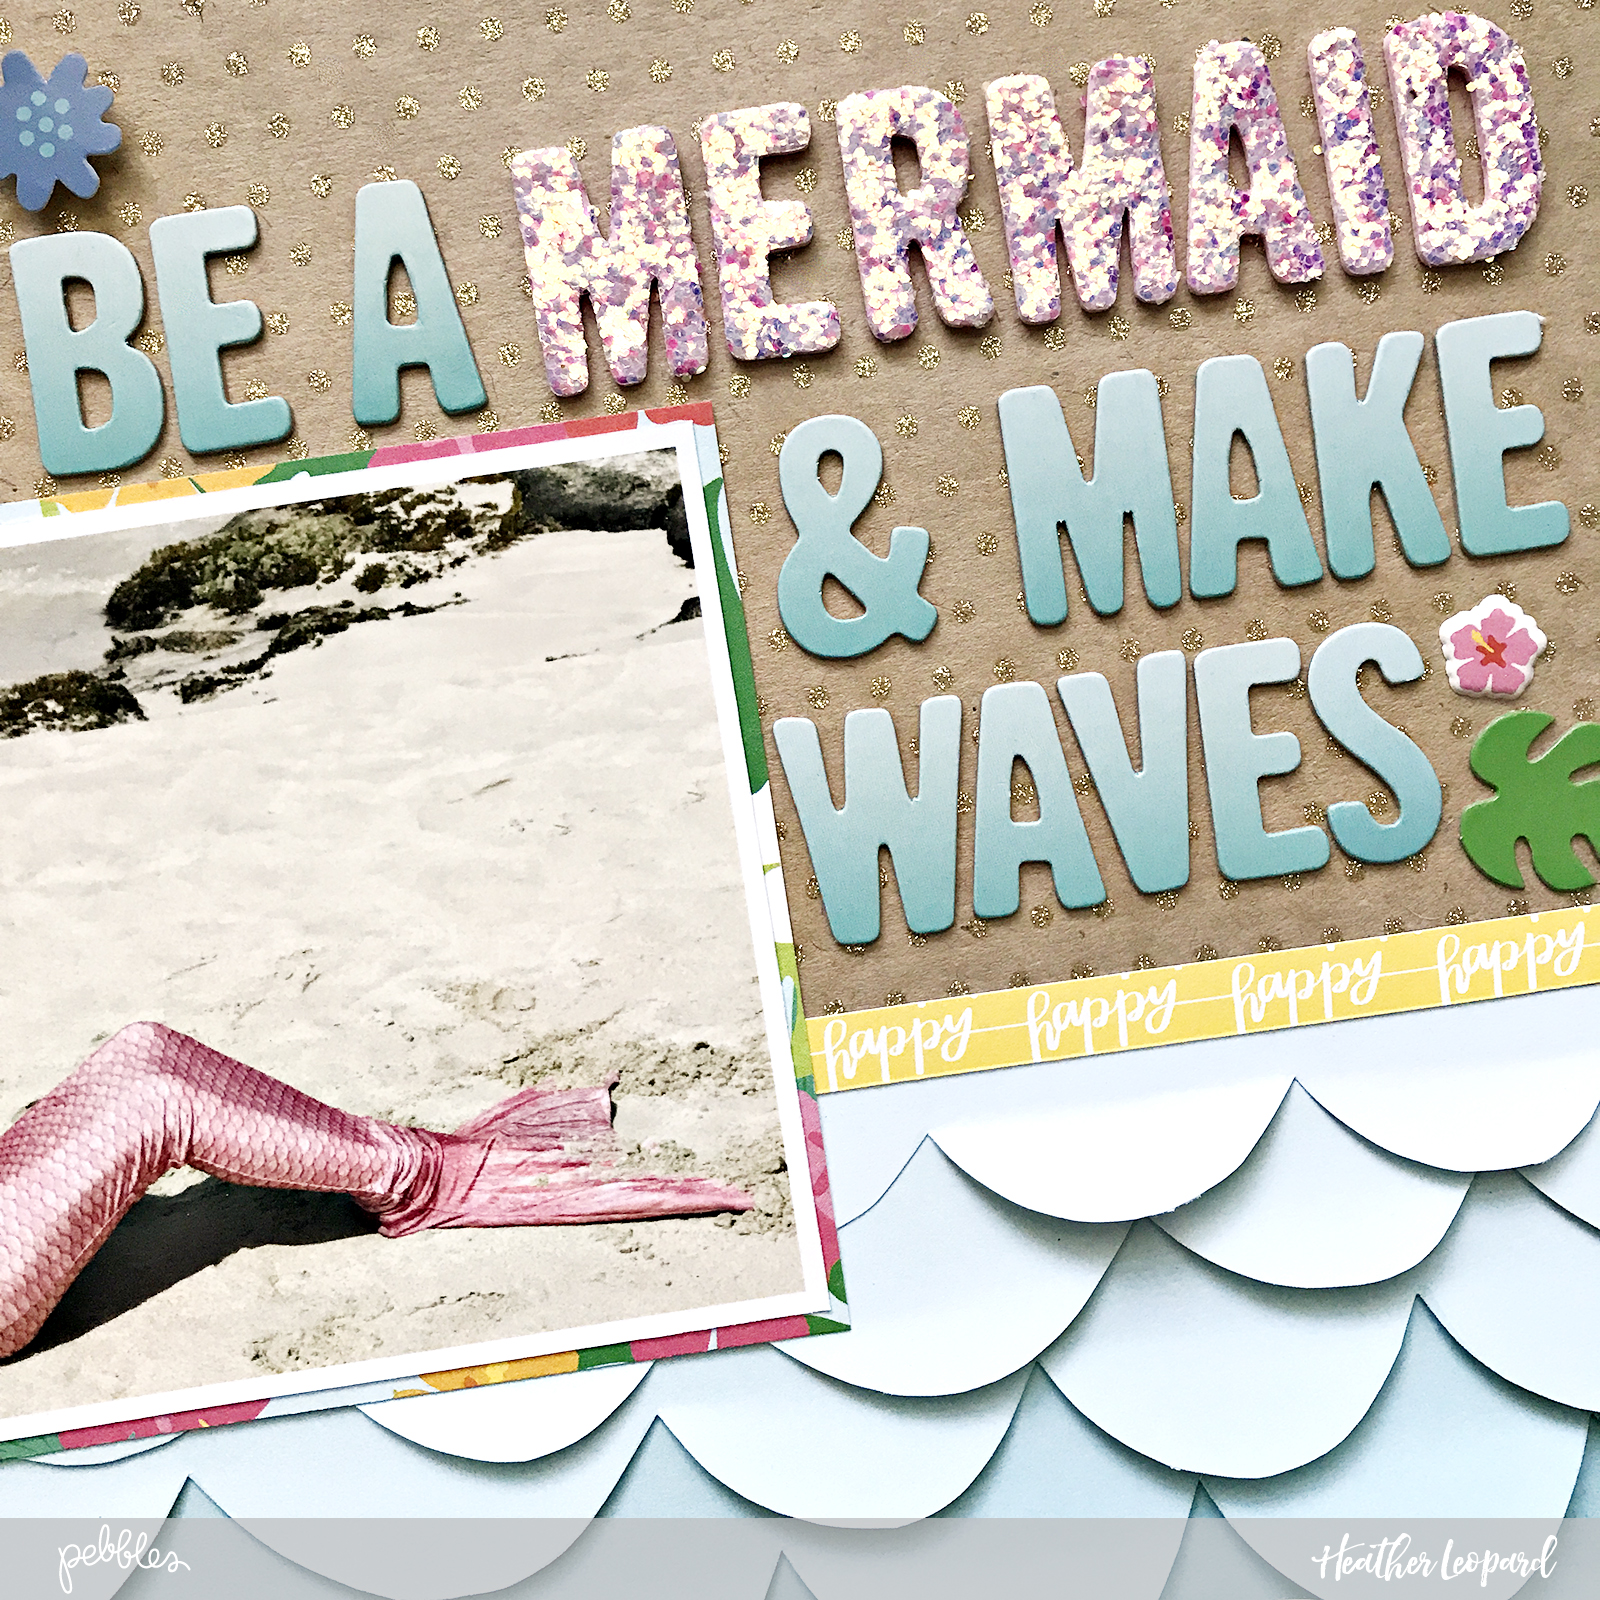 Beach Mermaid Scrapbook Layout by Heather Leopard for @pebblesInc using #SunshinyDays collection #mermaid #scrapbook #beach #scrapbooking #madewithpebbles